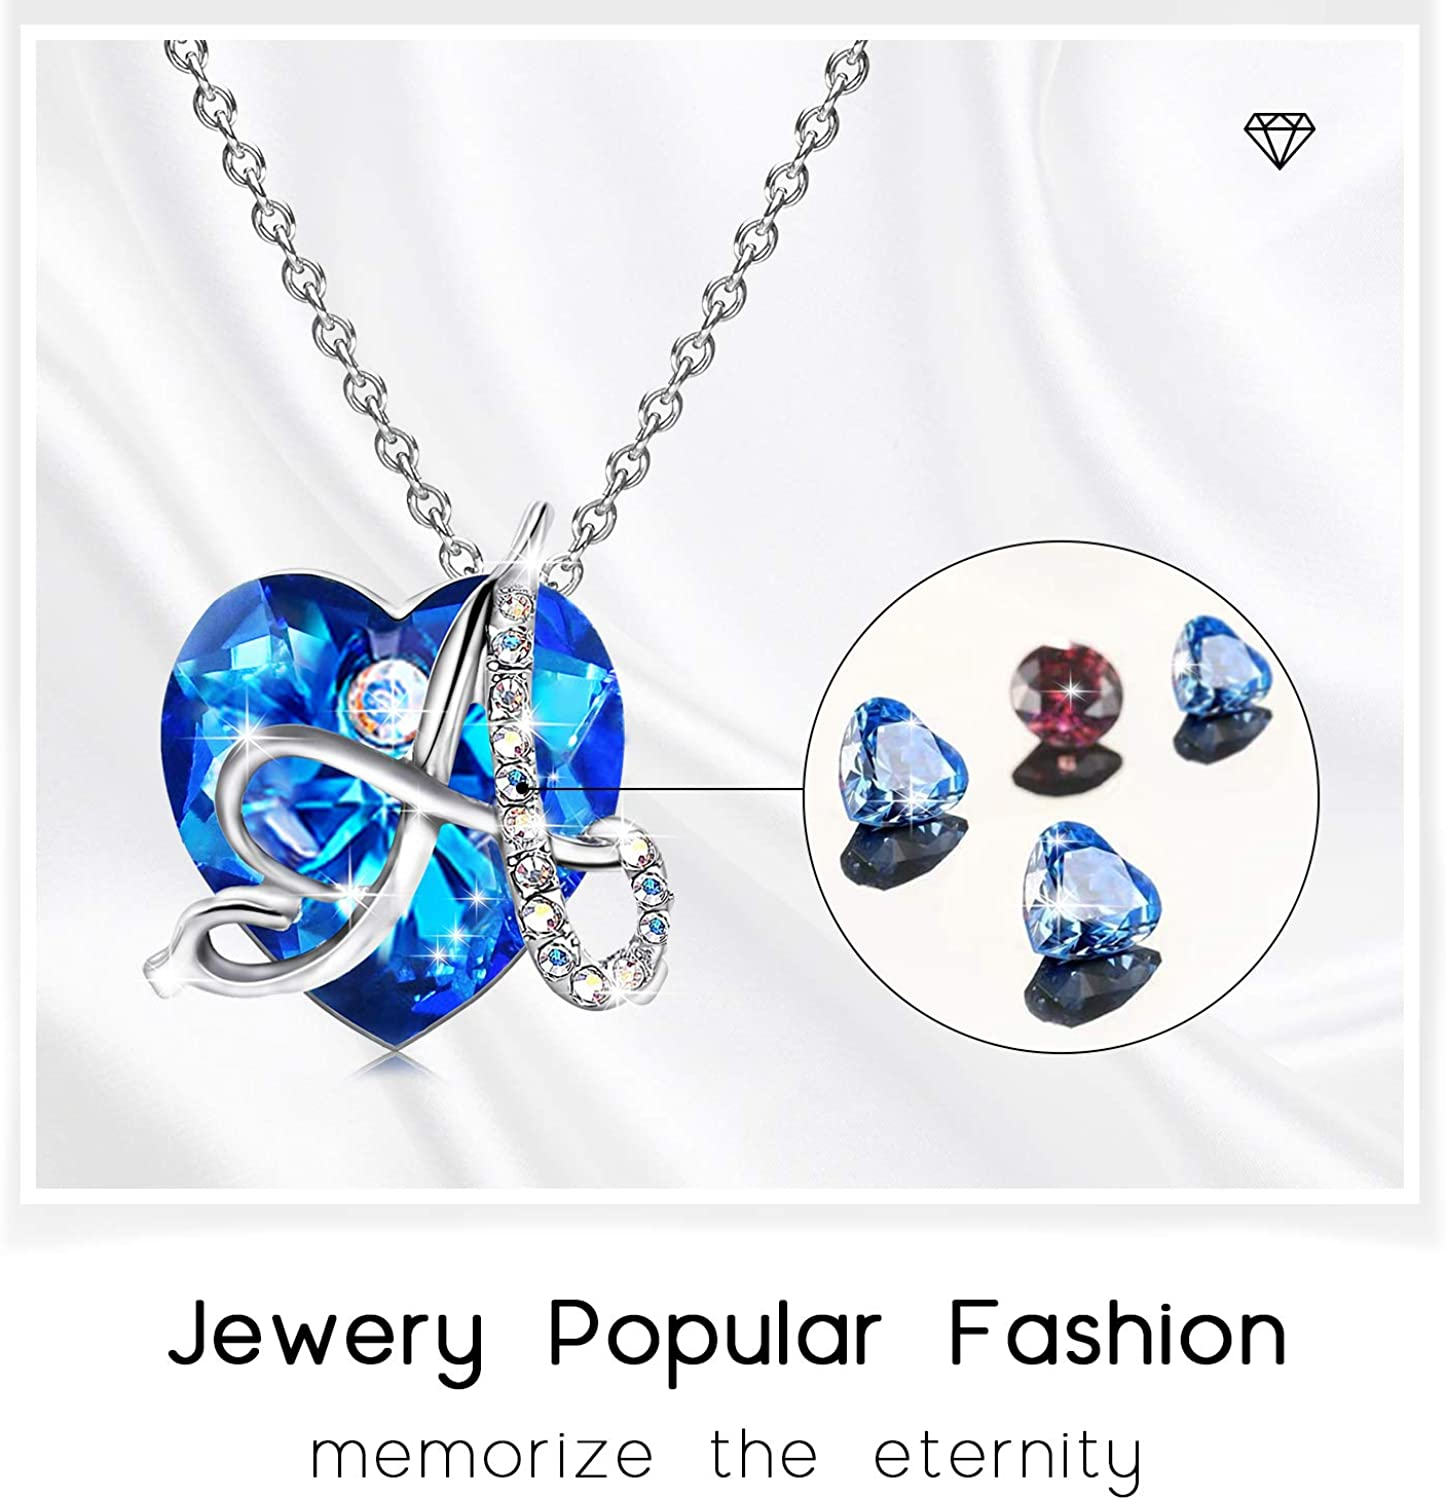 Customized Necklace with Initials on Blue Crystal Pendant Heart Necklace for Girls Heart A Initial Necklaces for Women Unique Jewelry for Women as Best Friend Graduation Mothers Day Gifts